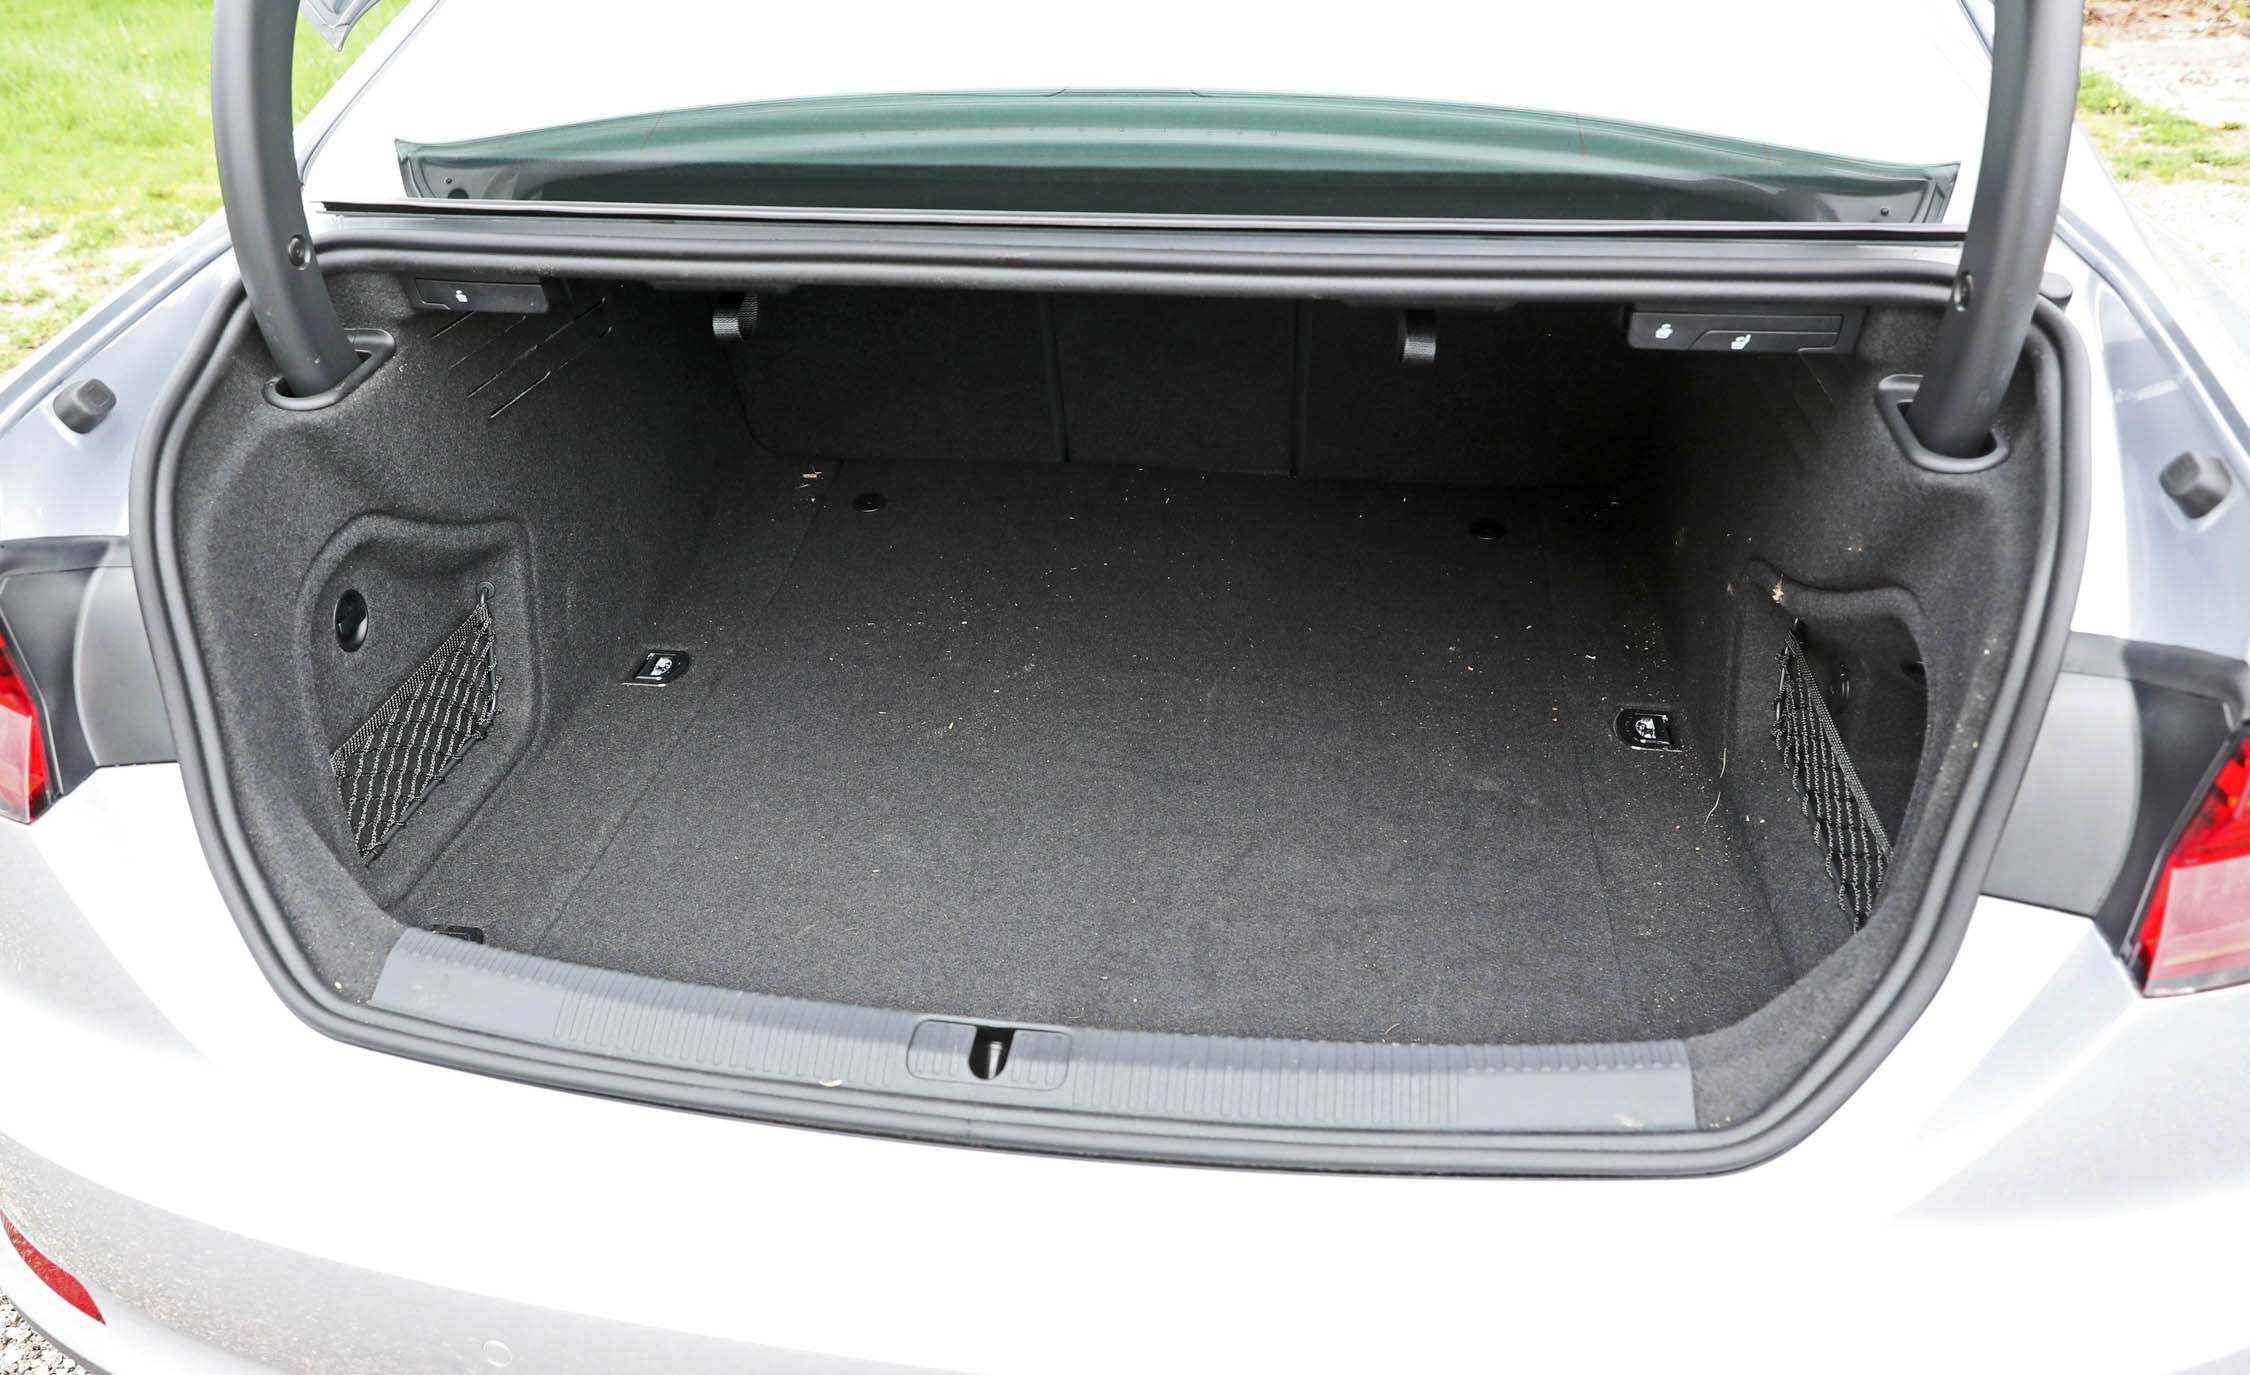 2018 Audi A5 Coupe Interior View Cargo Trunk (Photo 28 of 50)